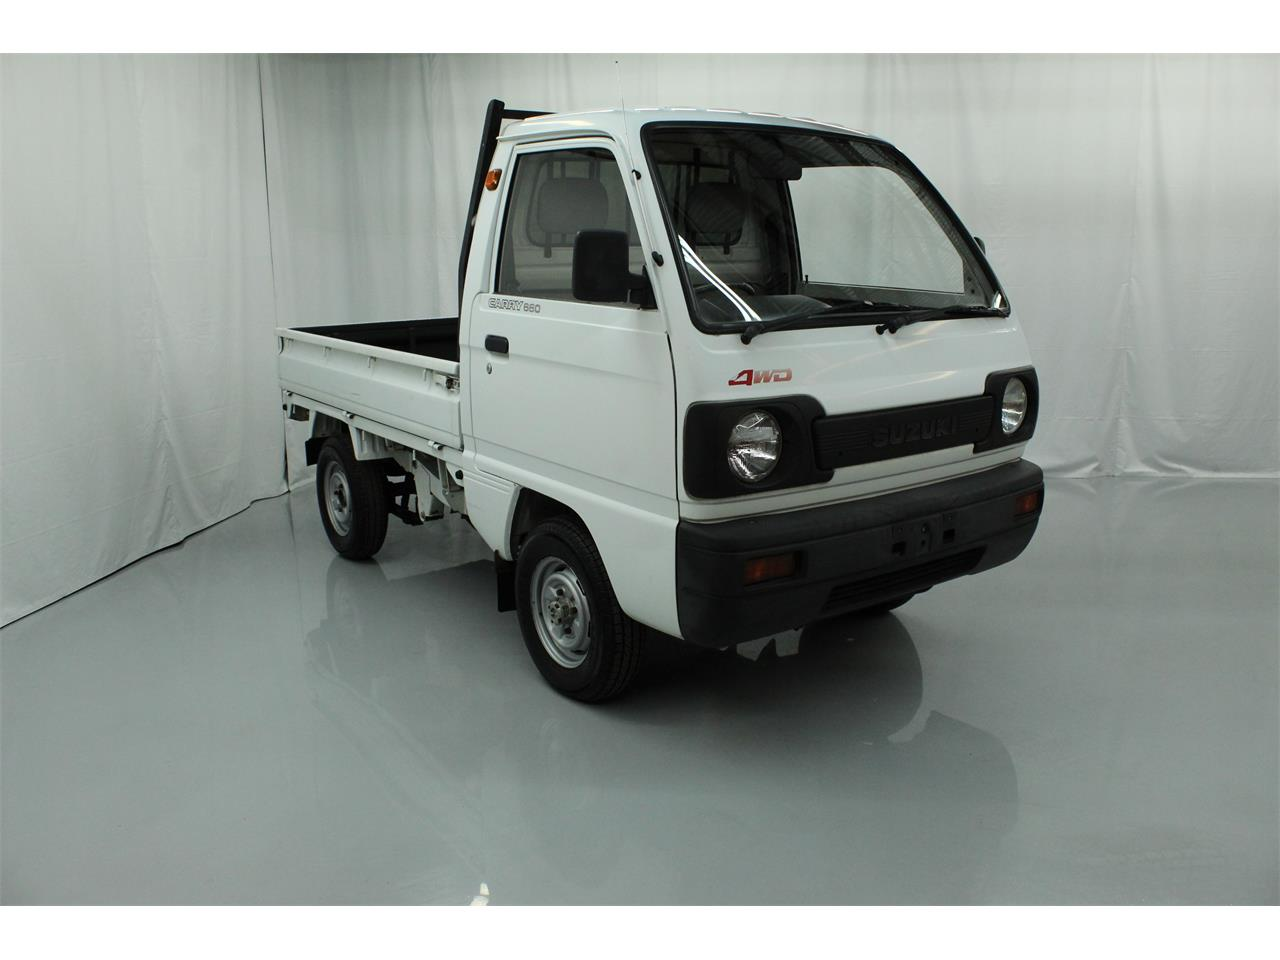 1990 Suzuki Carry for sale in Christiansburg, VA – photo 3